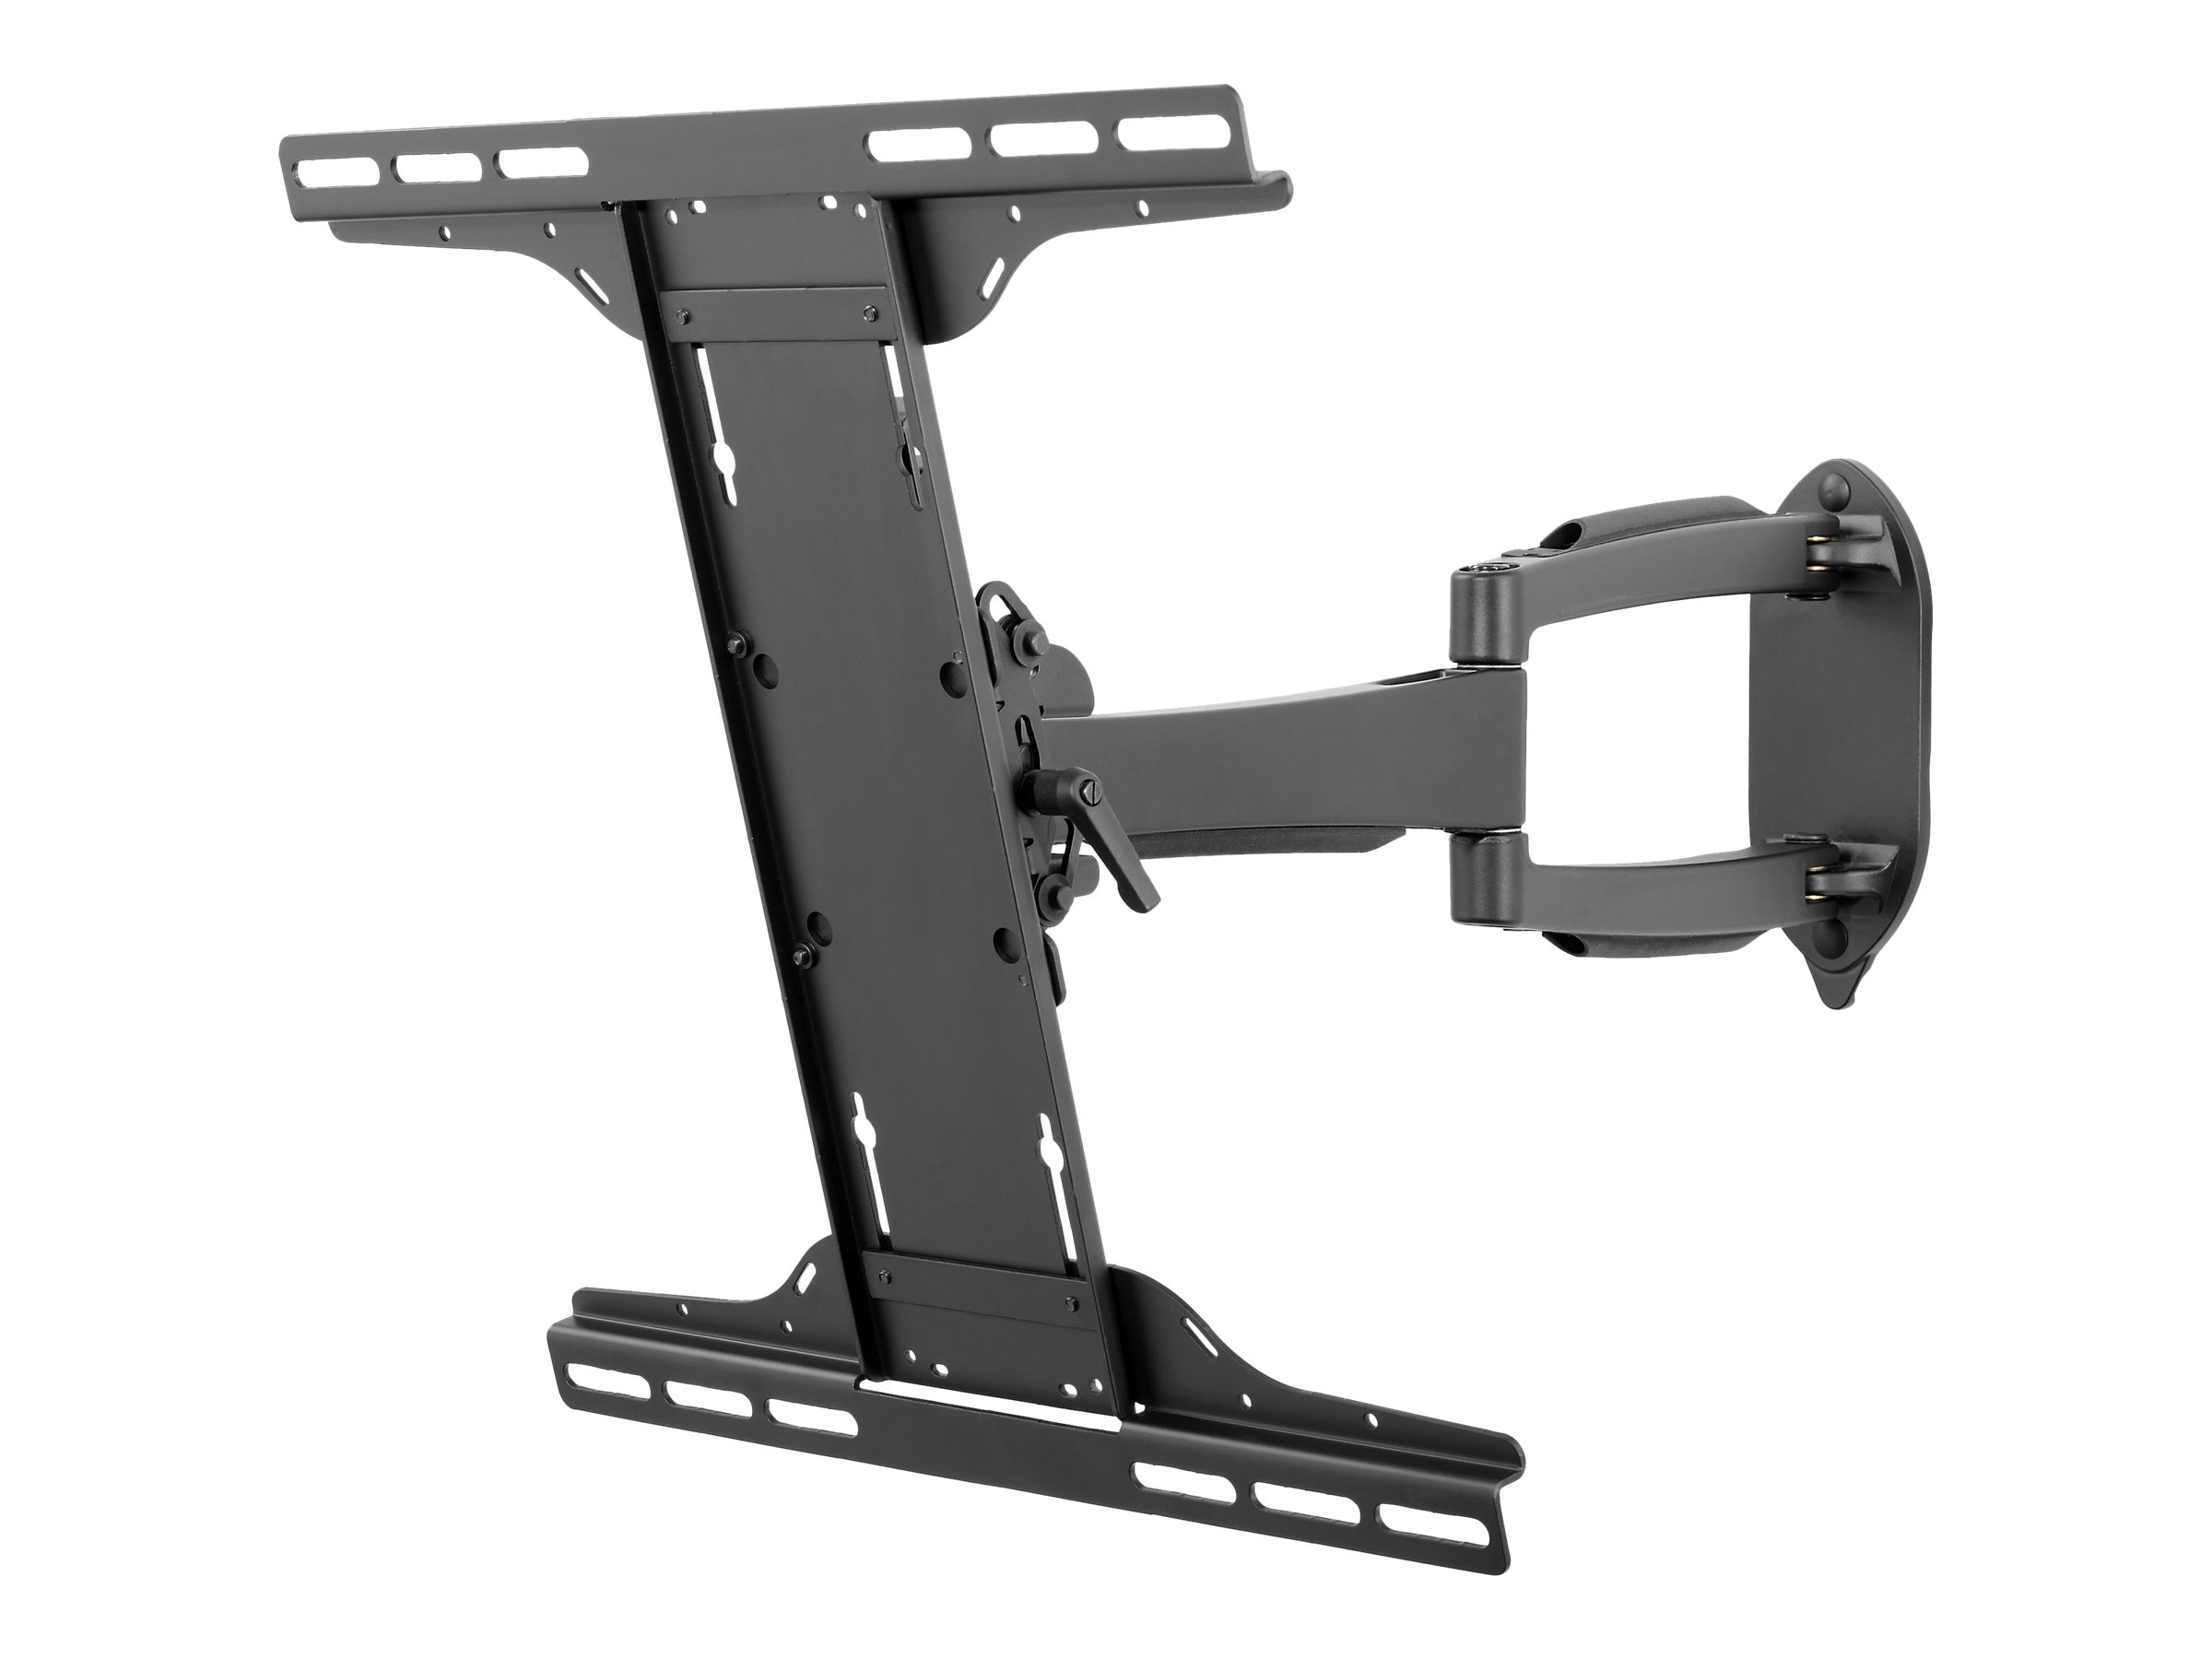 Peerless SmartMount Articulating Wall Arm for 32-50 Displays, SA746PU